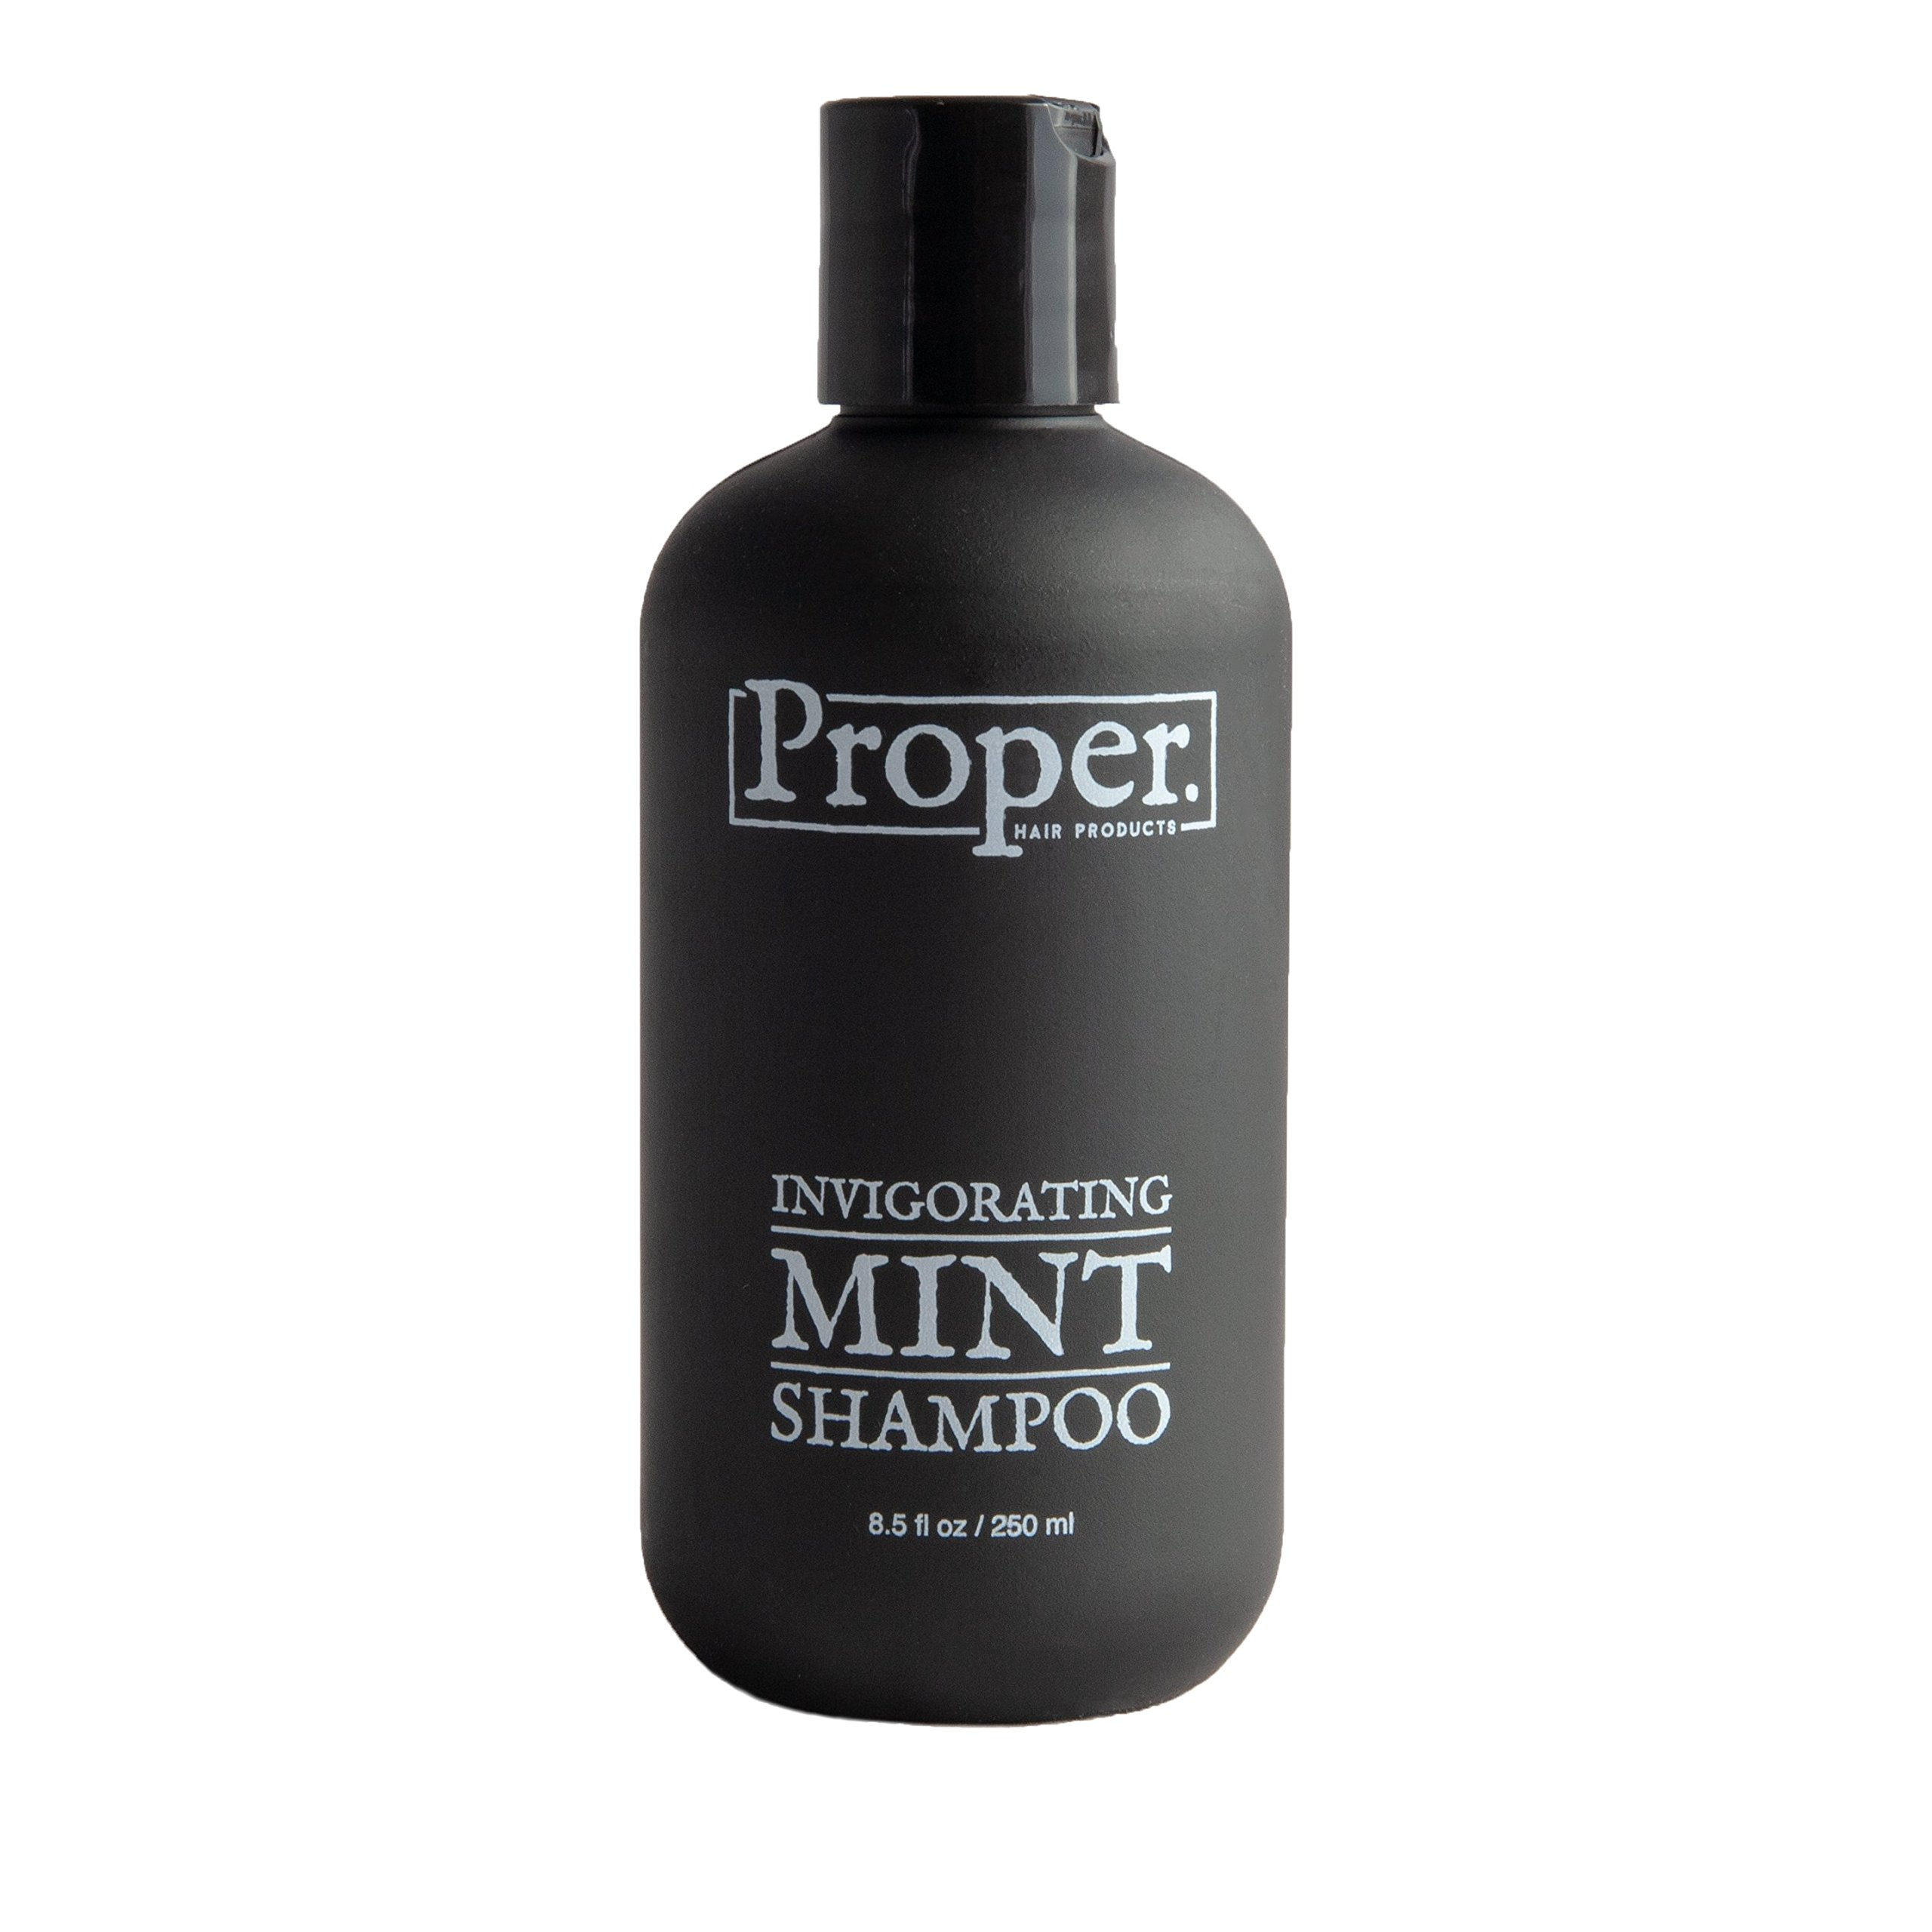 Men Shampoo - Salon Quality with Tea Tree Oil and Peppermint Oil Infusion to Alleviate Dandruff, Itchy or Dry Scalp, Hair Loss and Thinning Hair - Professional Stylist Recommended - Made in USA by Proper Hair Products